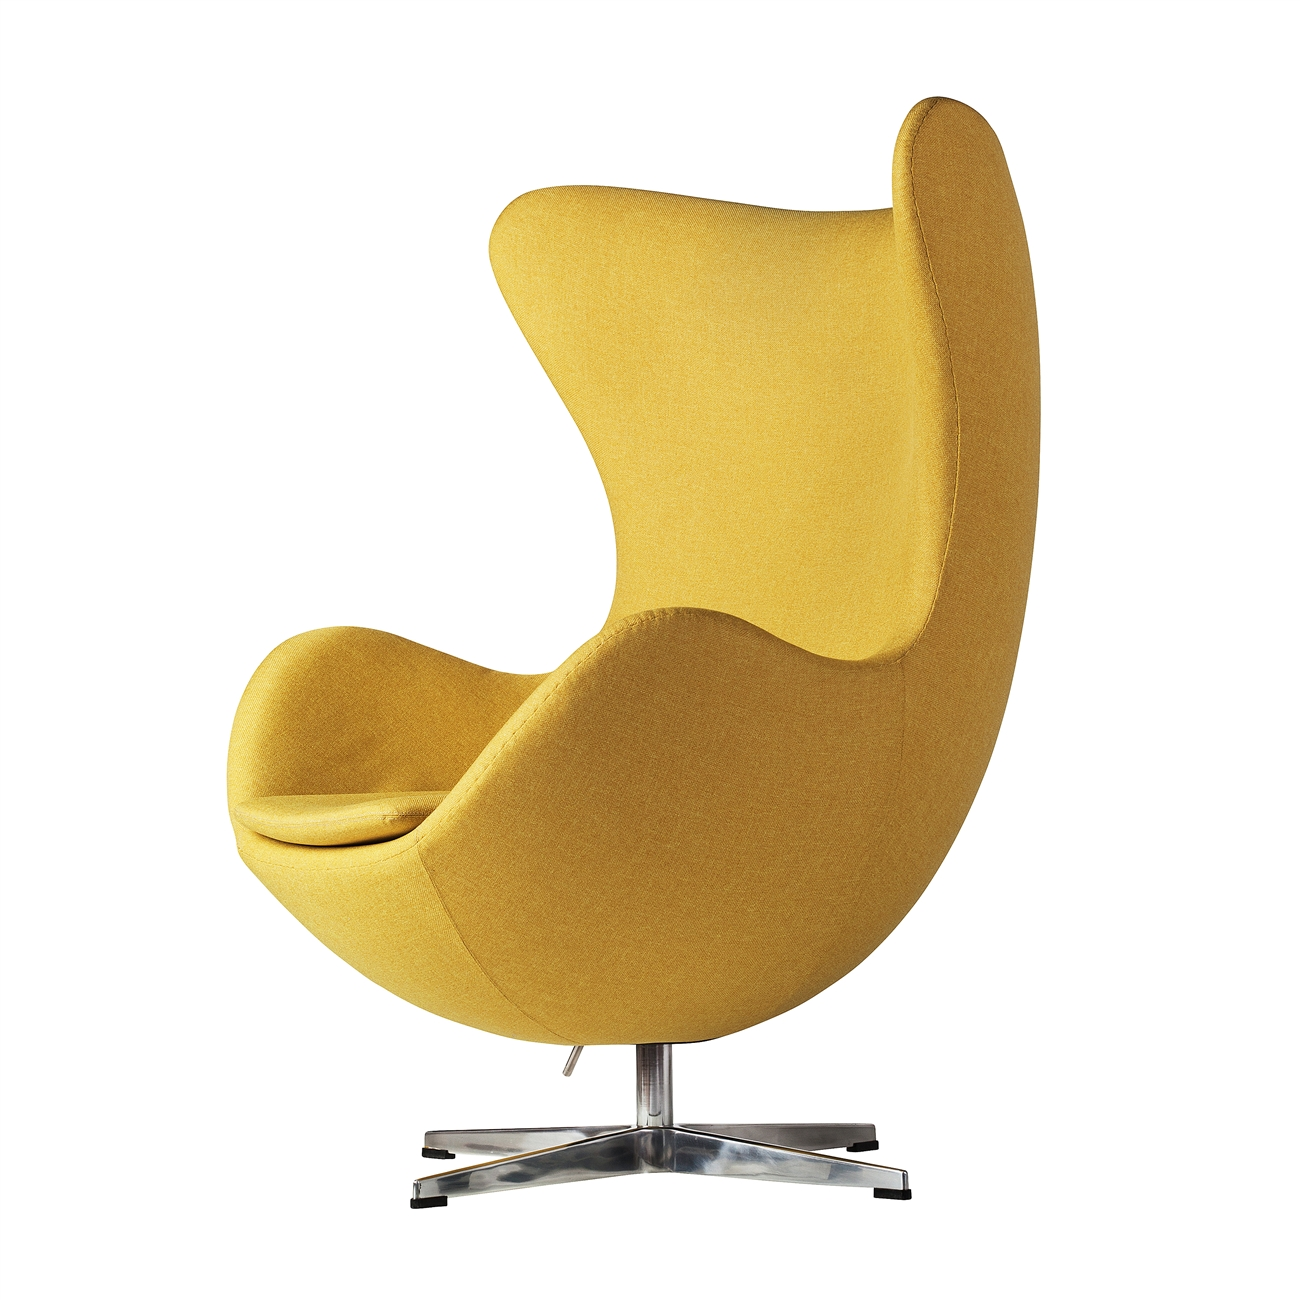 Arne Jacobsen Inspired Egg Swivel Chair In Yellow